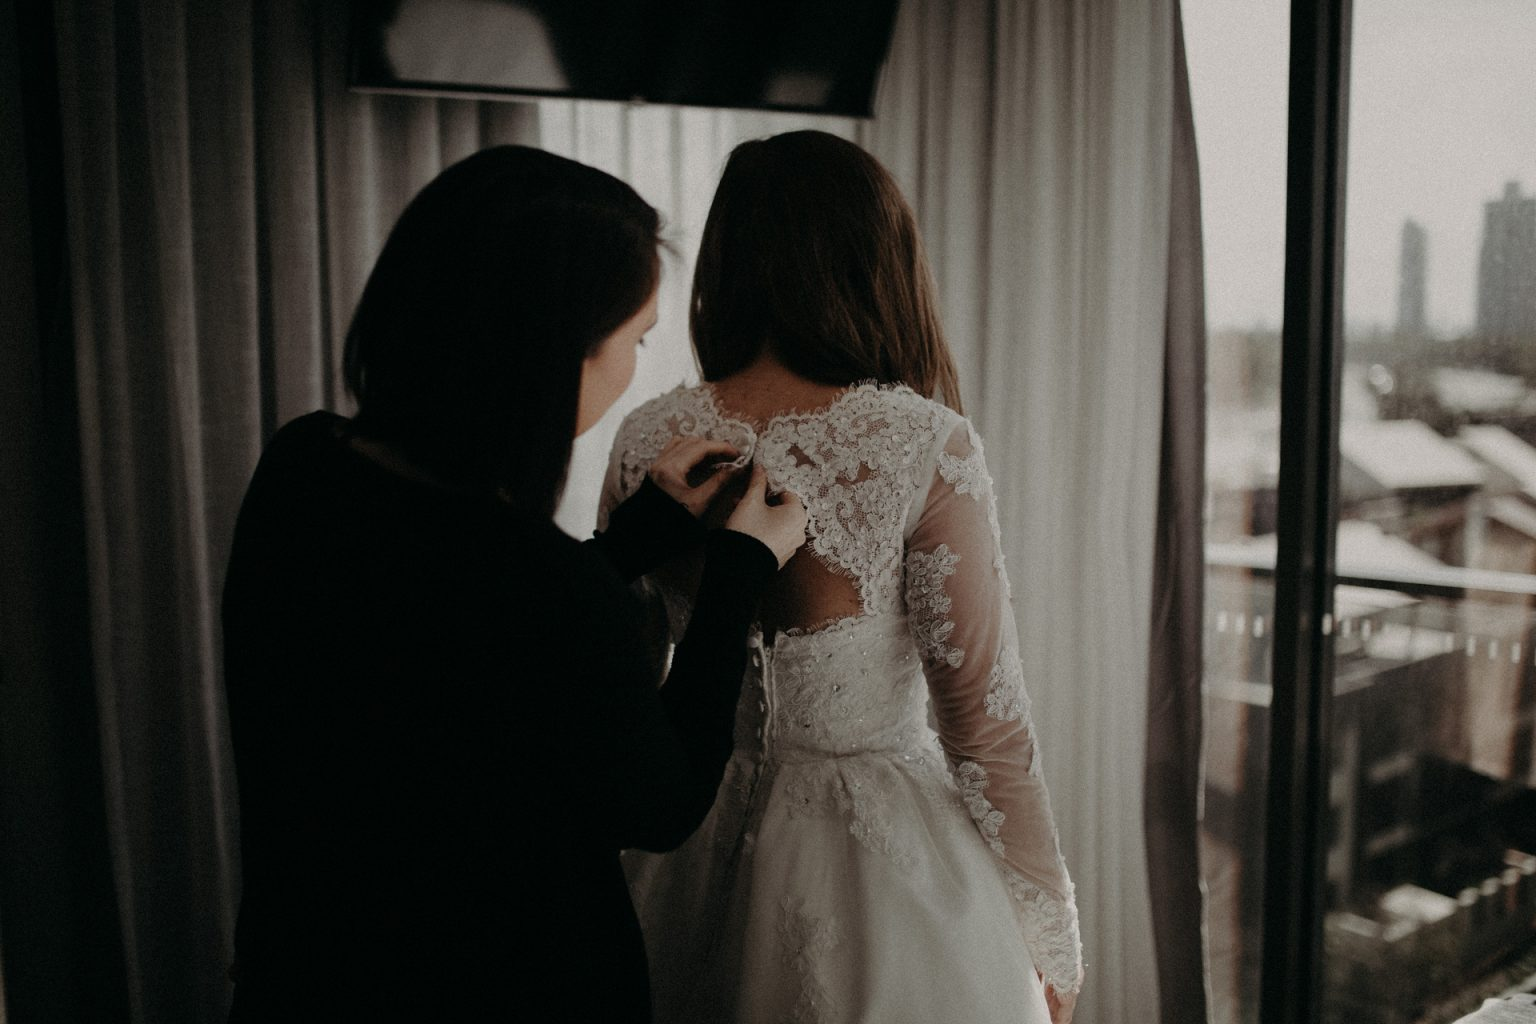 bridesmaid helping bride with gown